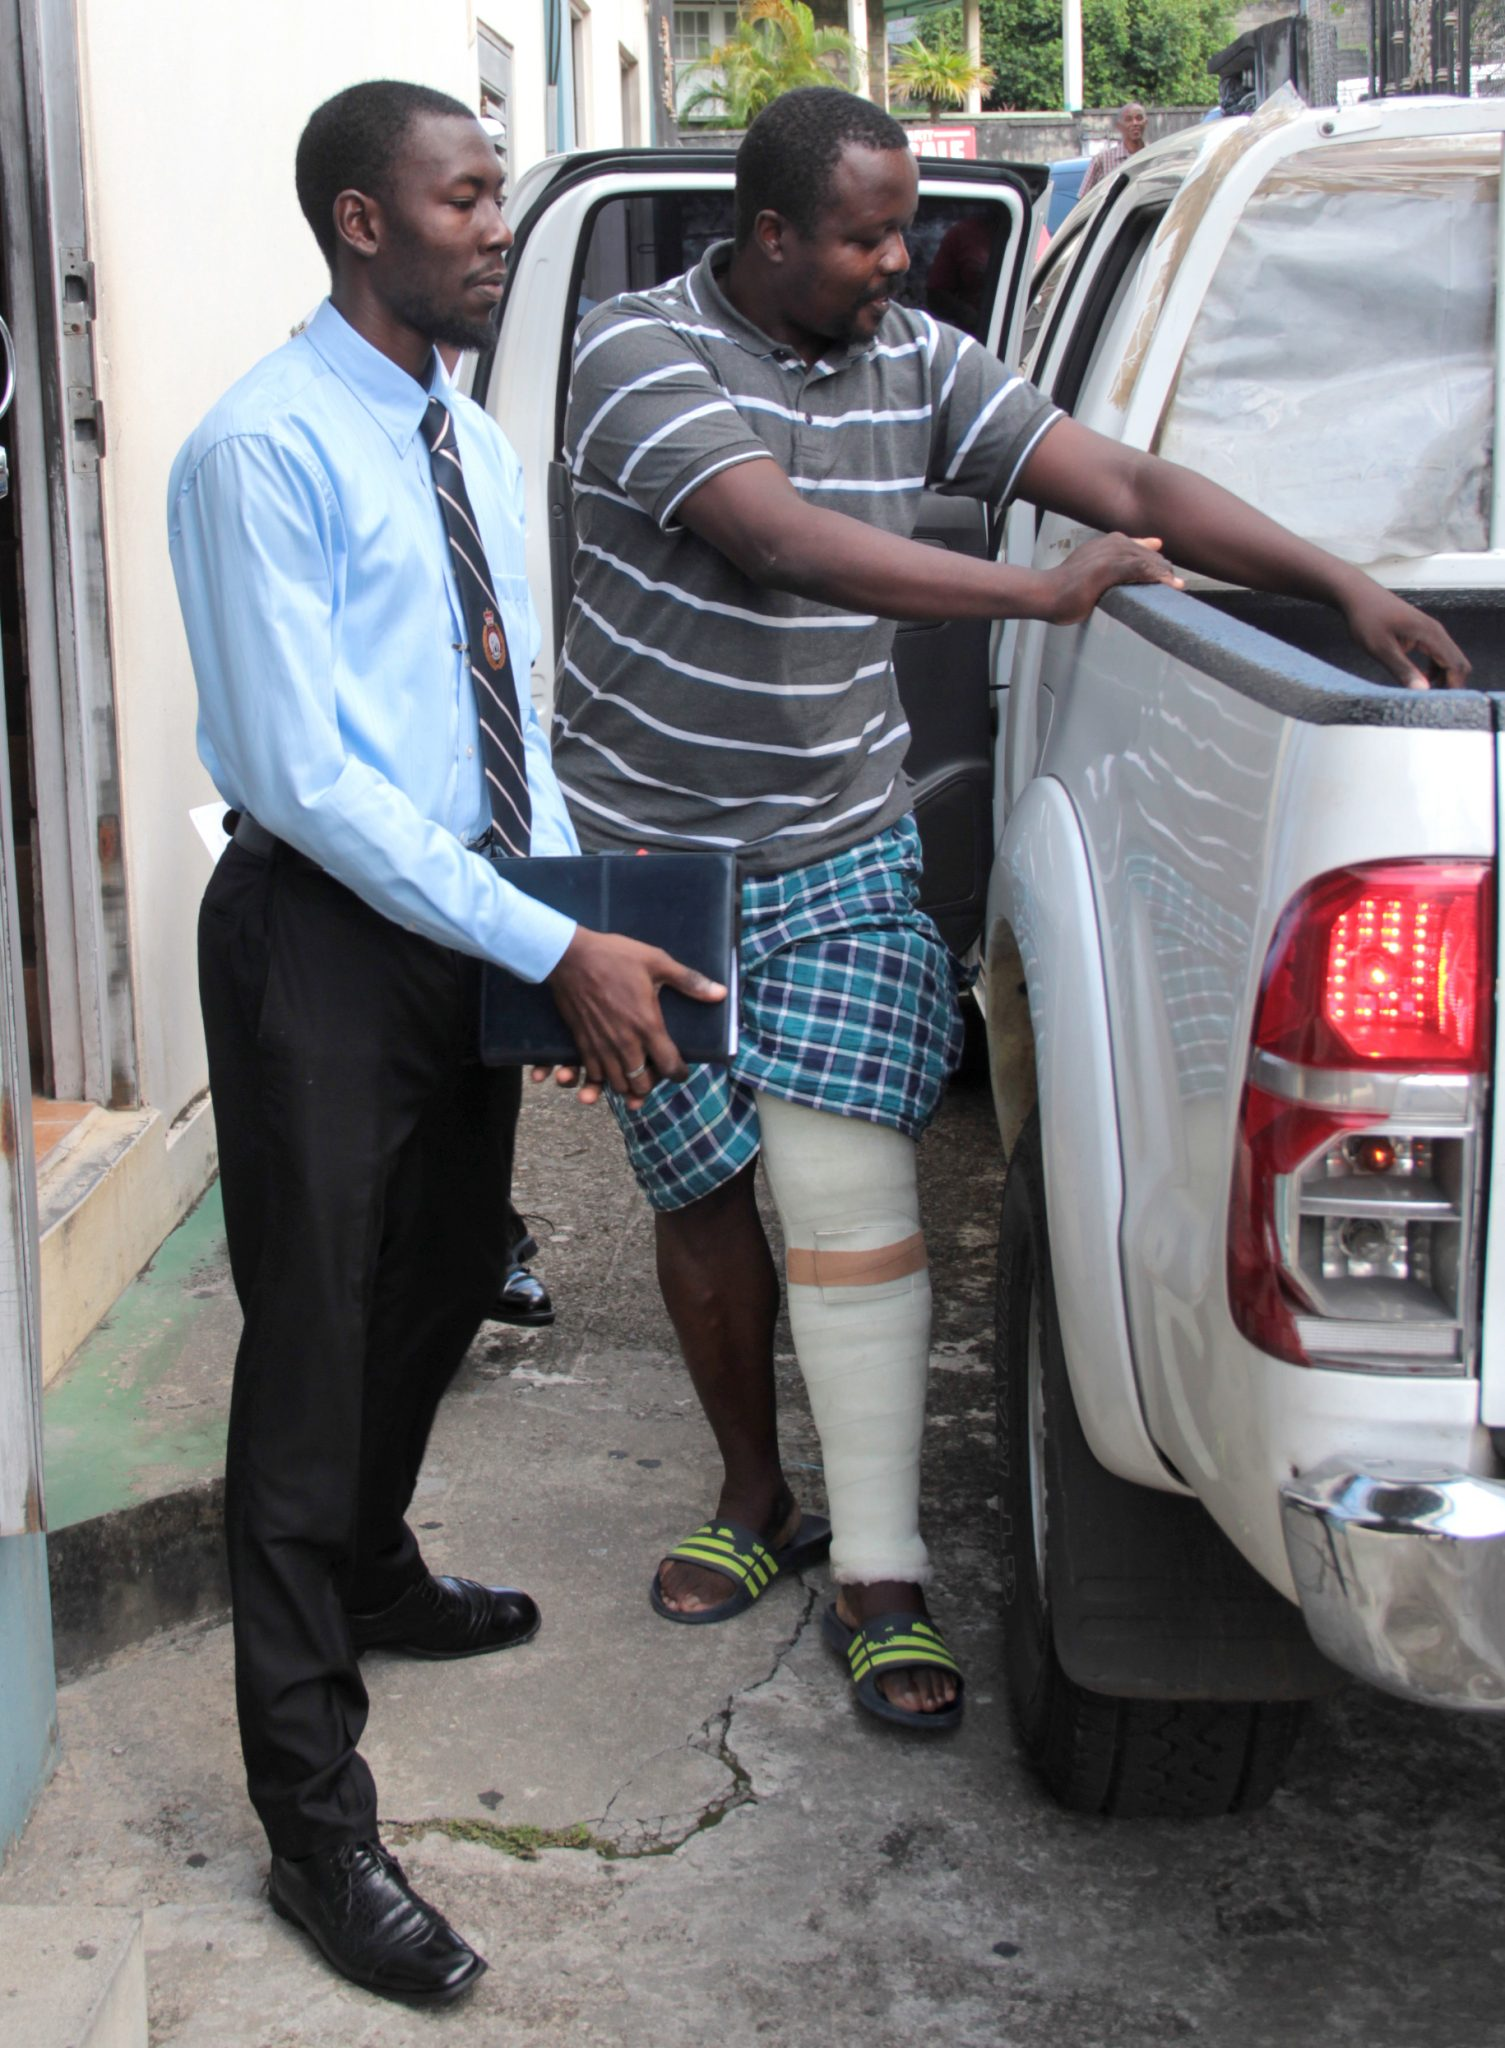 Accused robber, Kimolow Quashie, right, reaches for his crutches as he arrives at the court building on Tuesday. (IWN photo)